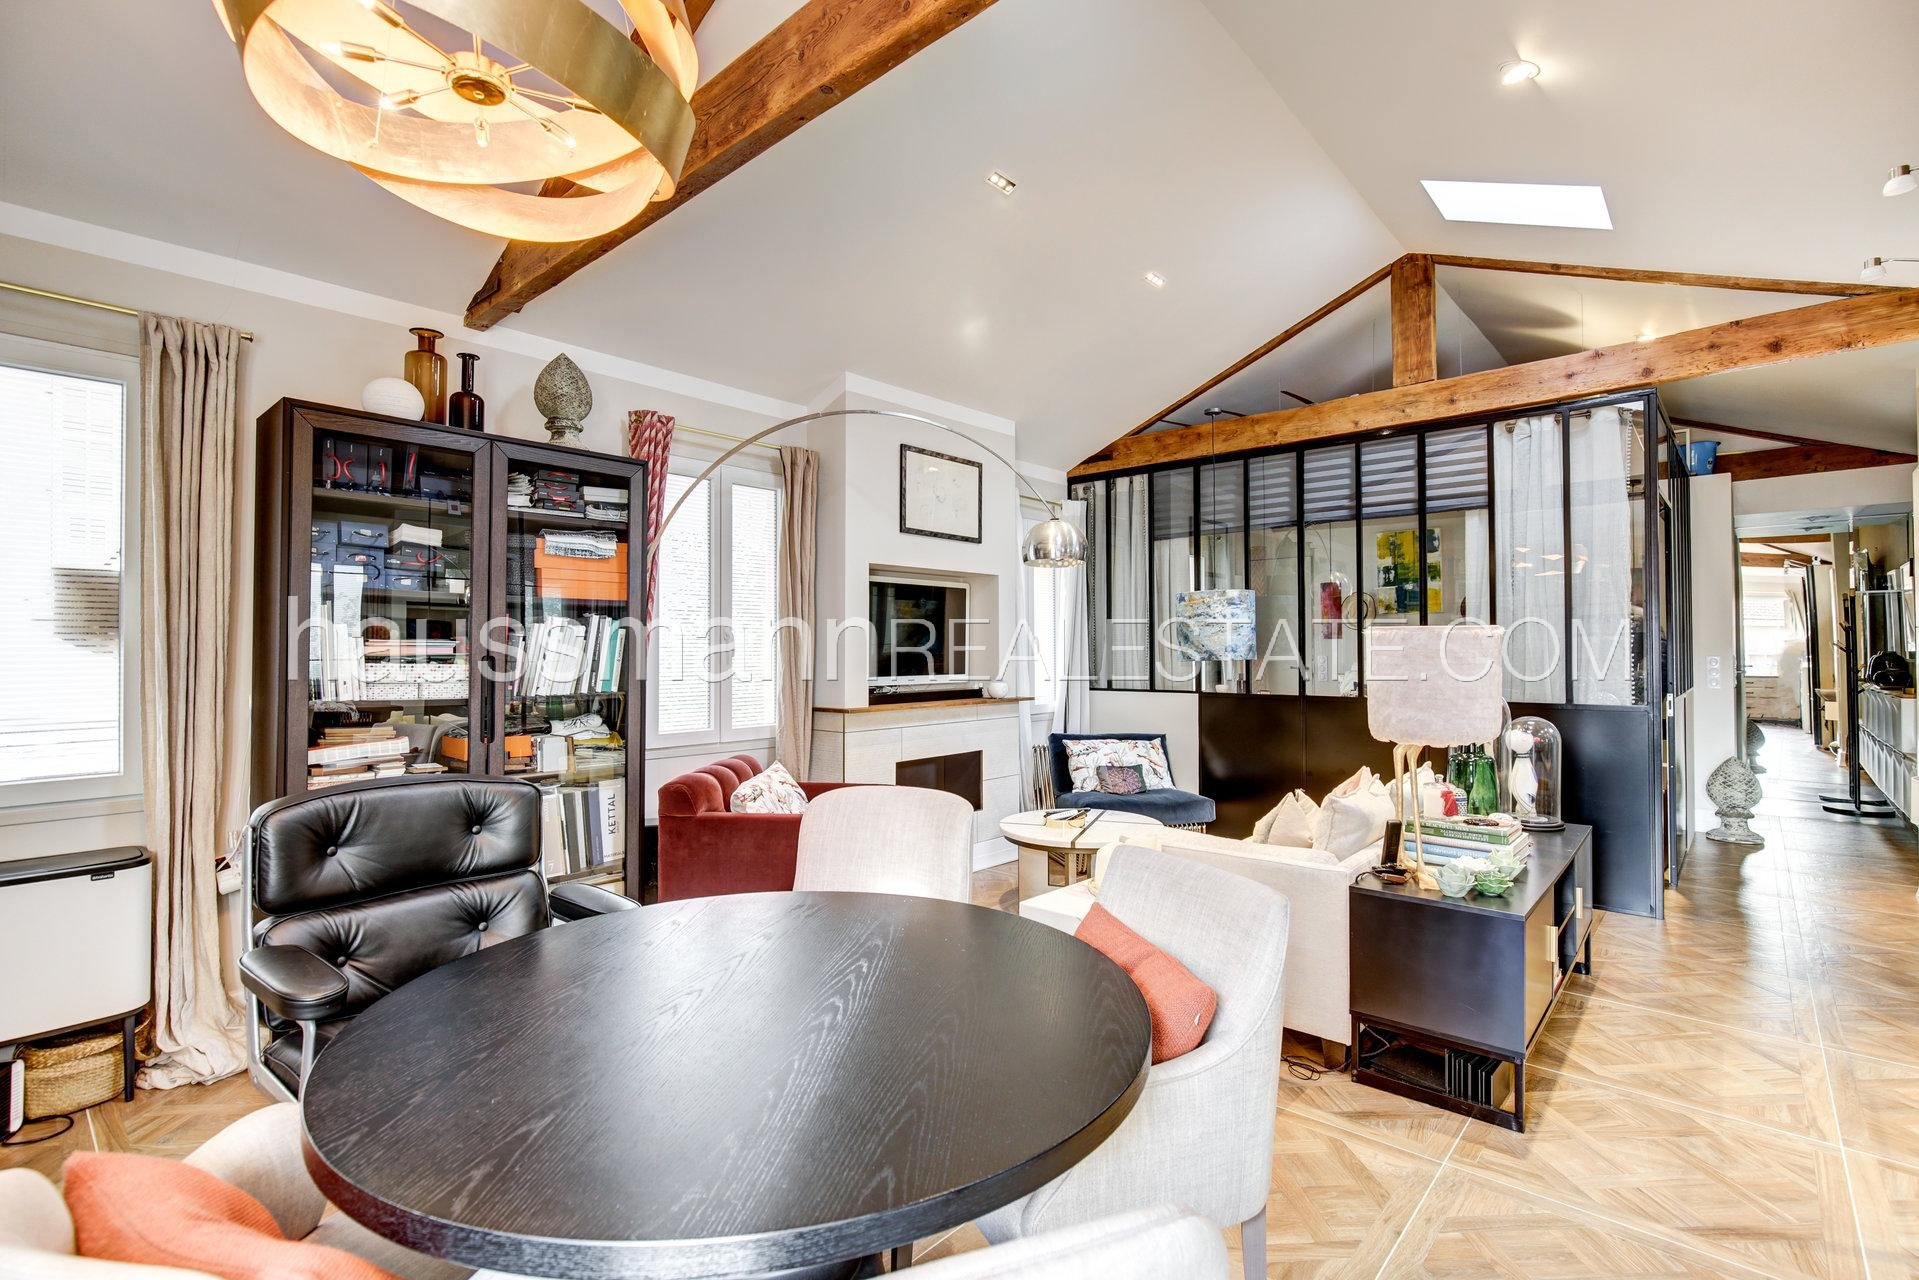 Buying Apartment Beaulieu-sur-Mer Renovated pied-à-terre in the heart of Beaulieu Sur Mer of 46 sqm